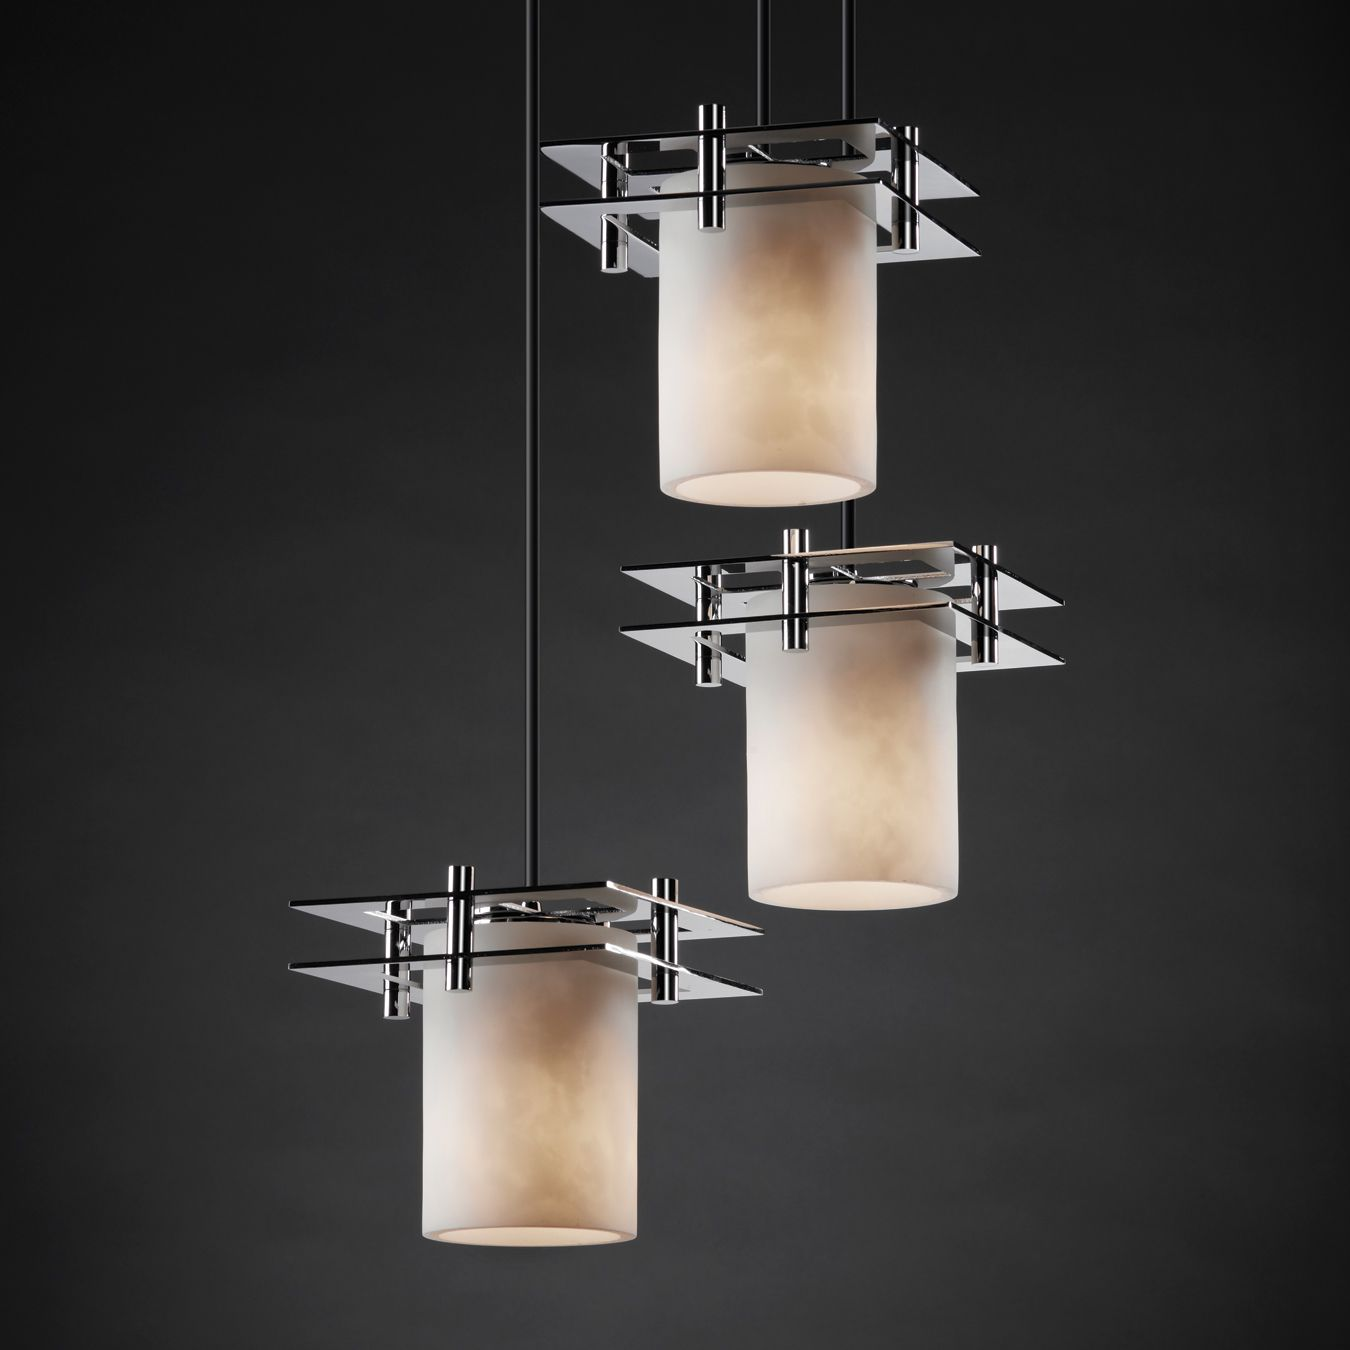 Justice Design Group Cld 8166 Clouds Metropolis 3 Light Cluster